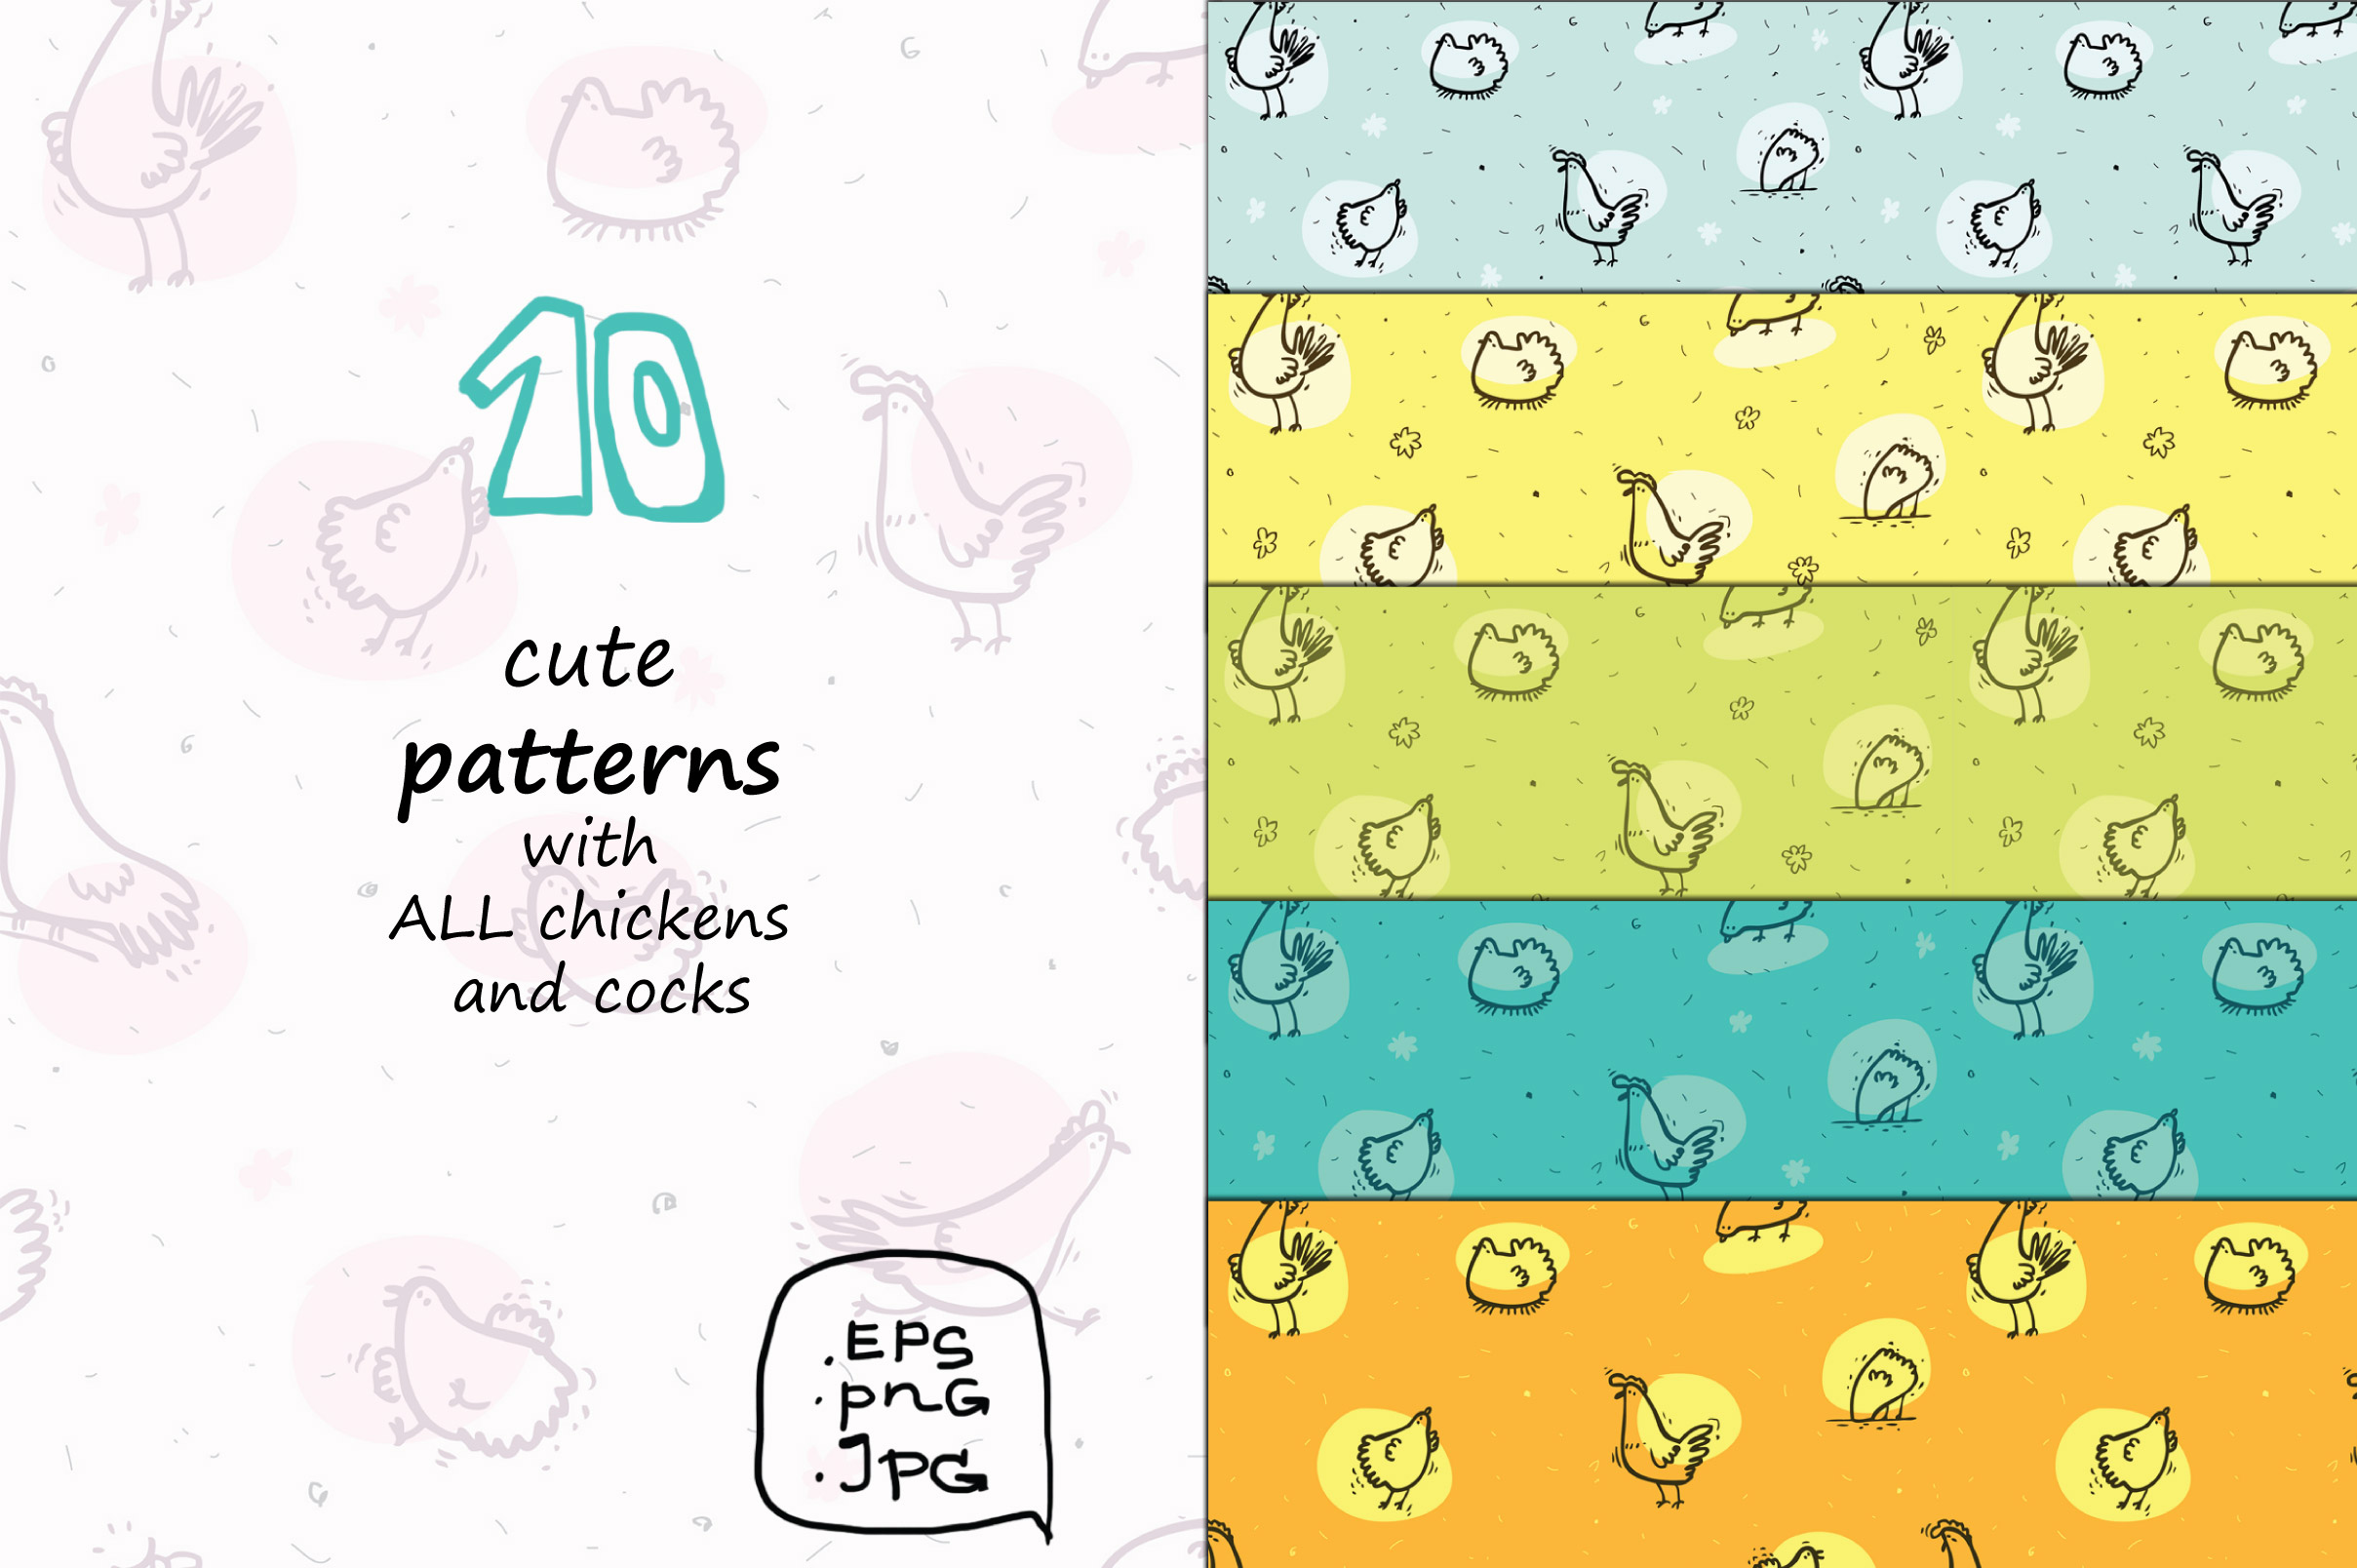 Wise Hens - 32 patterns, prints example image 3